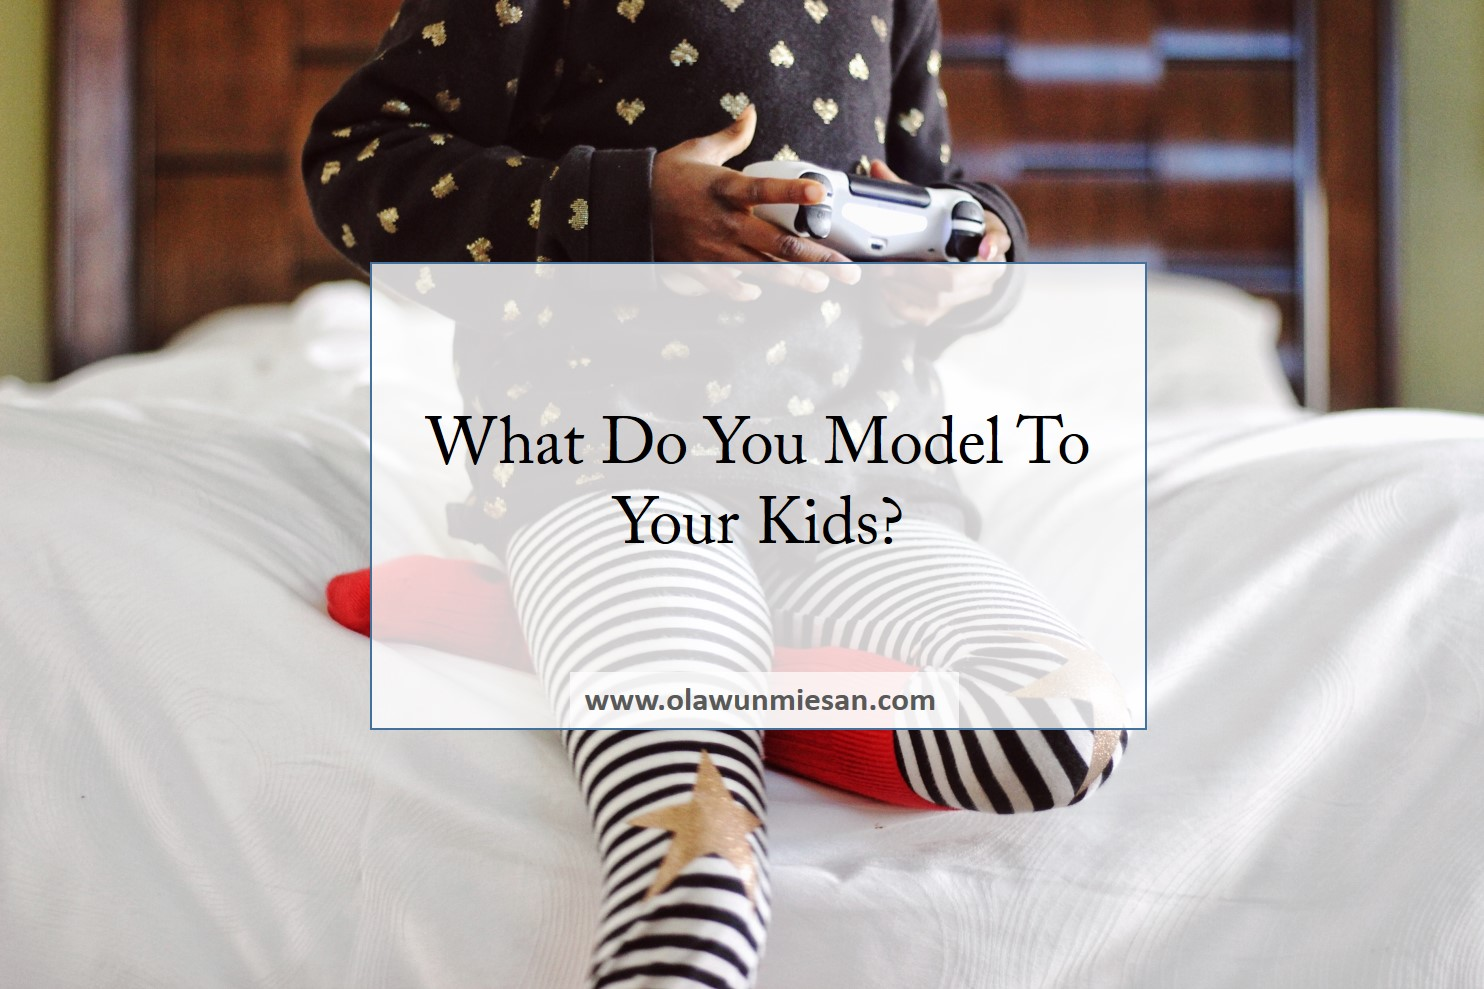 What Do You Model To Your Kids?